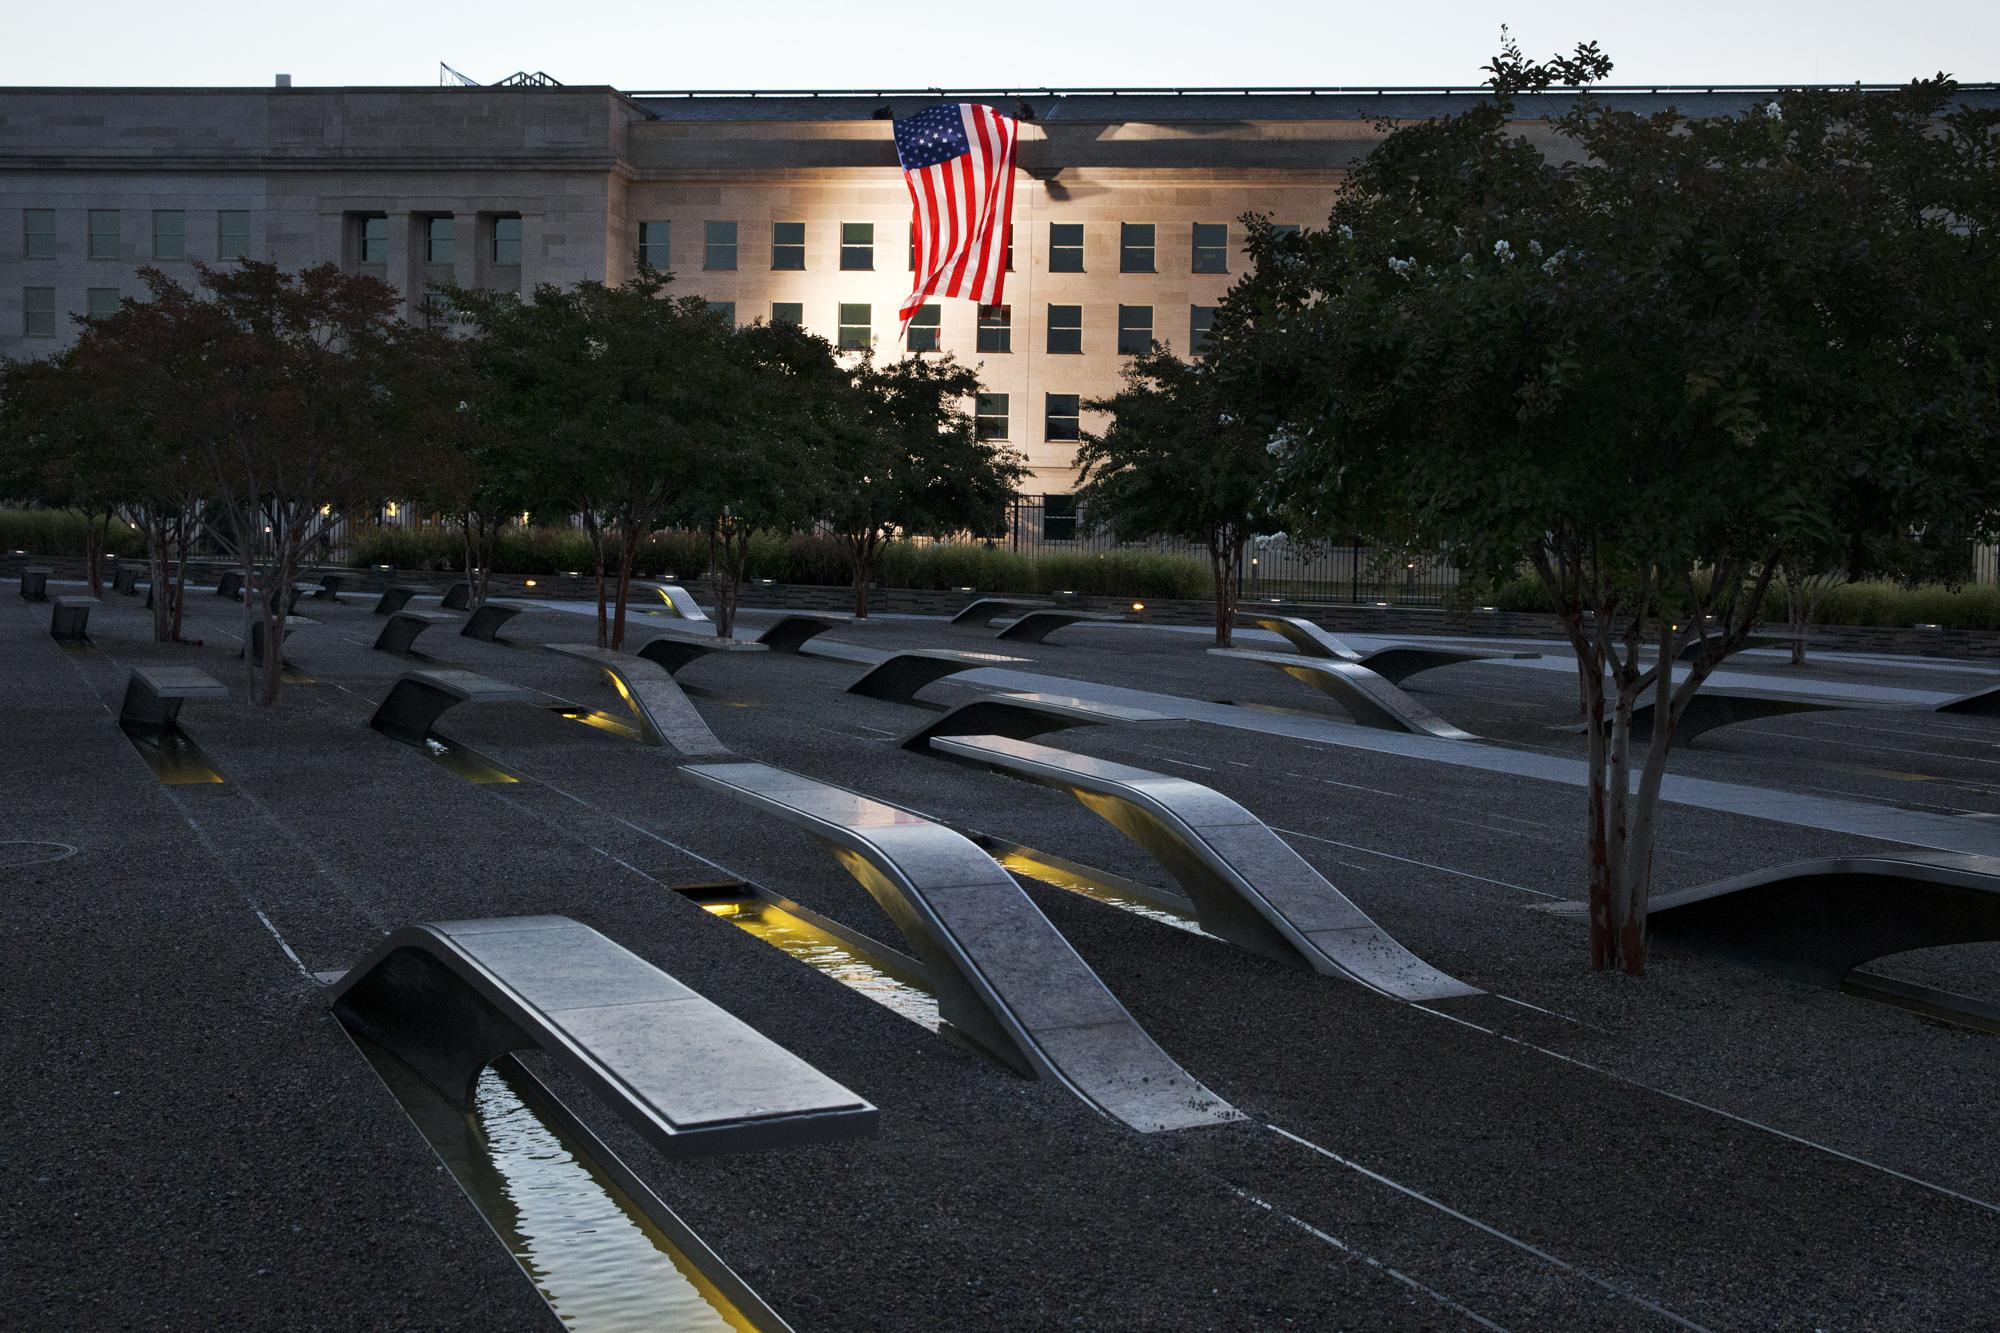 ADVANCE FOR PUBLICATION ON SUNDAY, SEPT. 5, AND THEREAFTER - FILE - In this Friday Sept. 11, 2015 file photo, a U.S. flag is draped on the side of the Pentagon where the attack took place 14 years earlier, seen from the Pentagon Memorial. (AP Photo/Jacquelyn Martin, File)